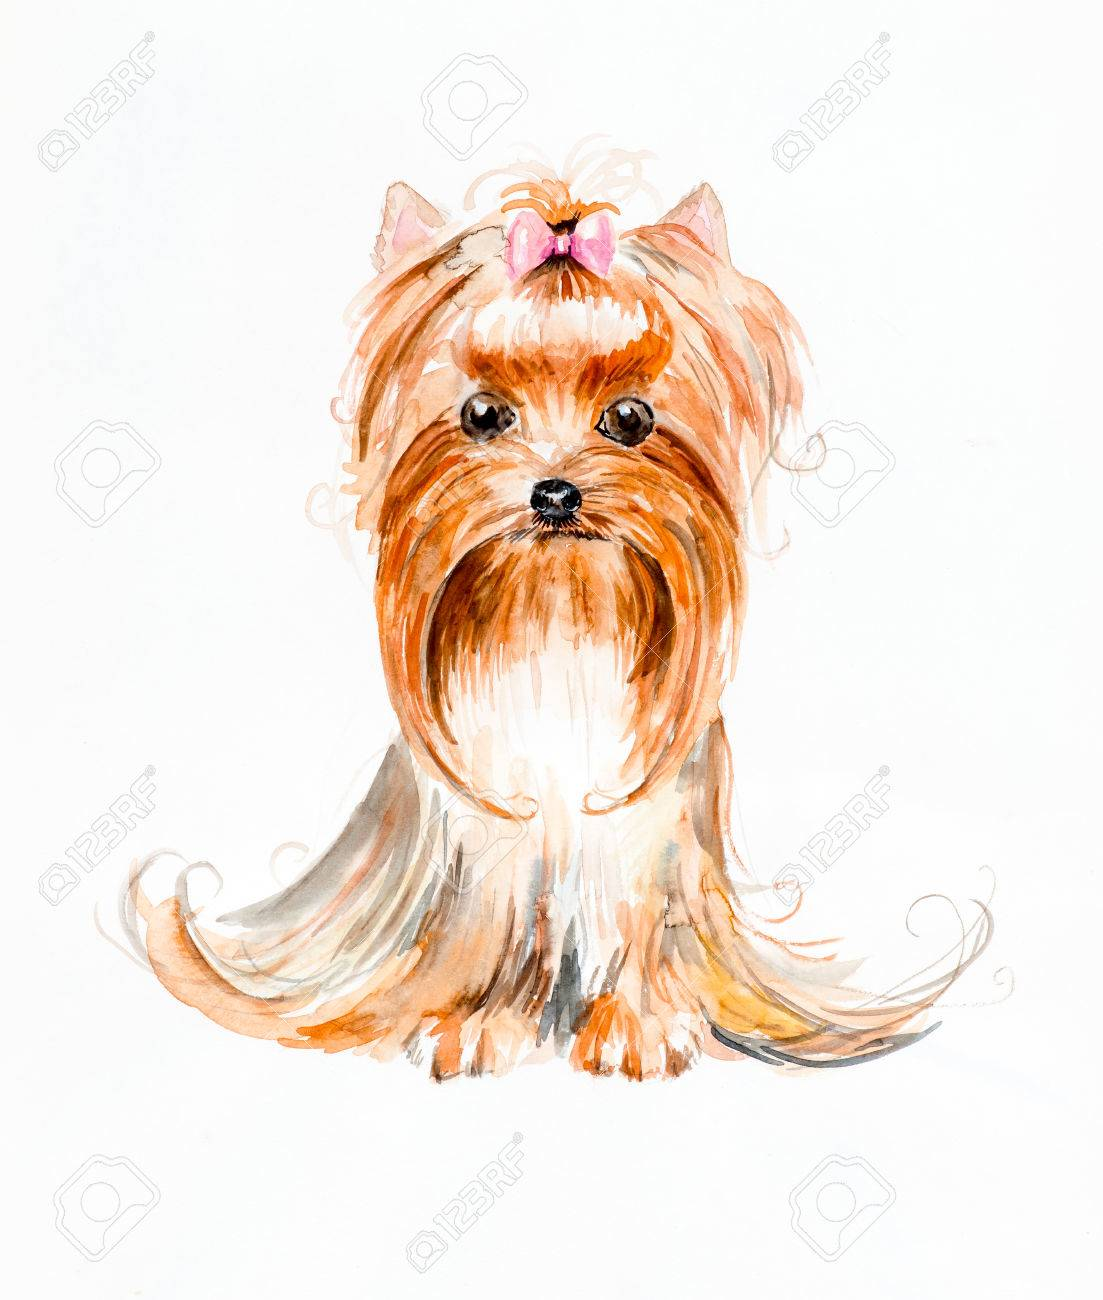 1103x1300 Dog With A Hood. Yorkshire Terrier. Pink Bow And Hair Dress